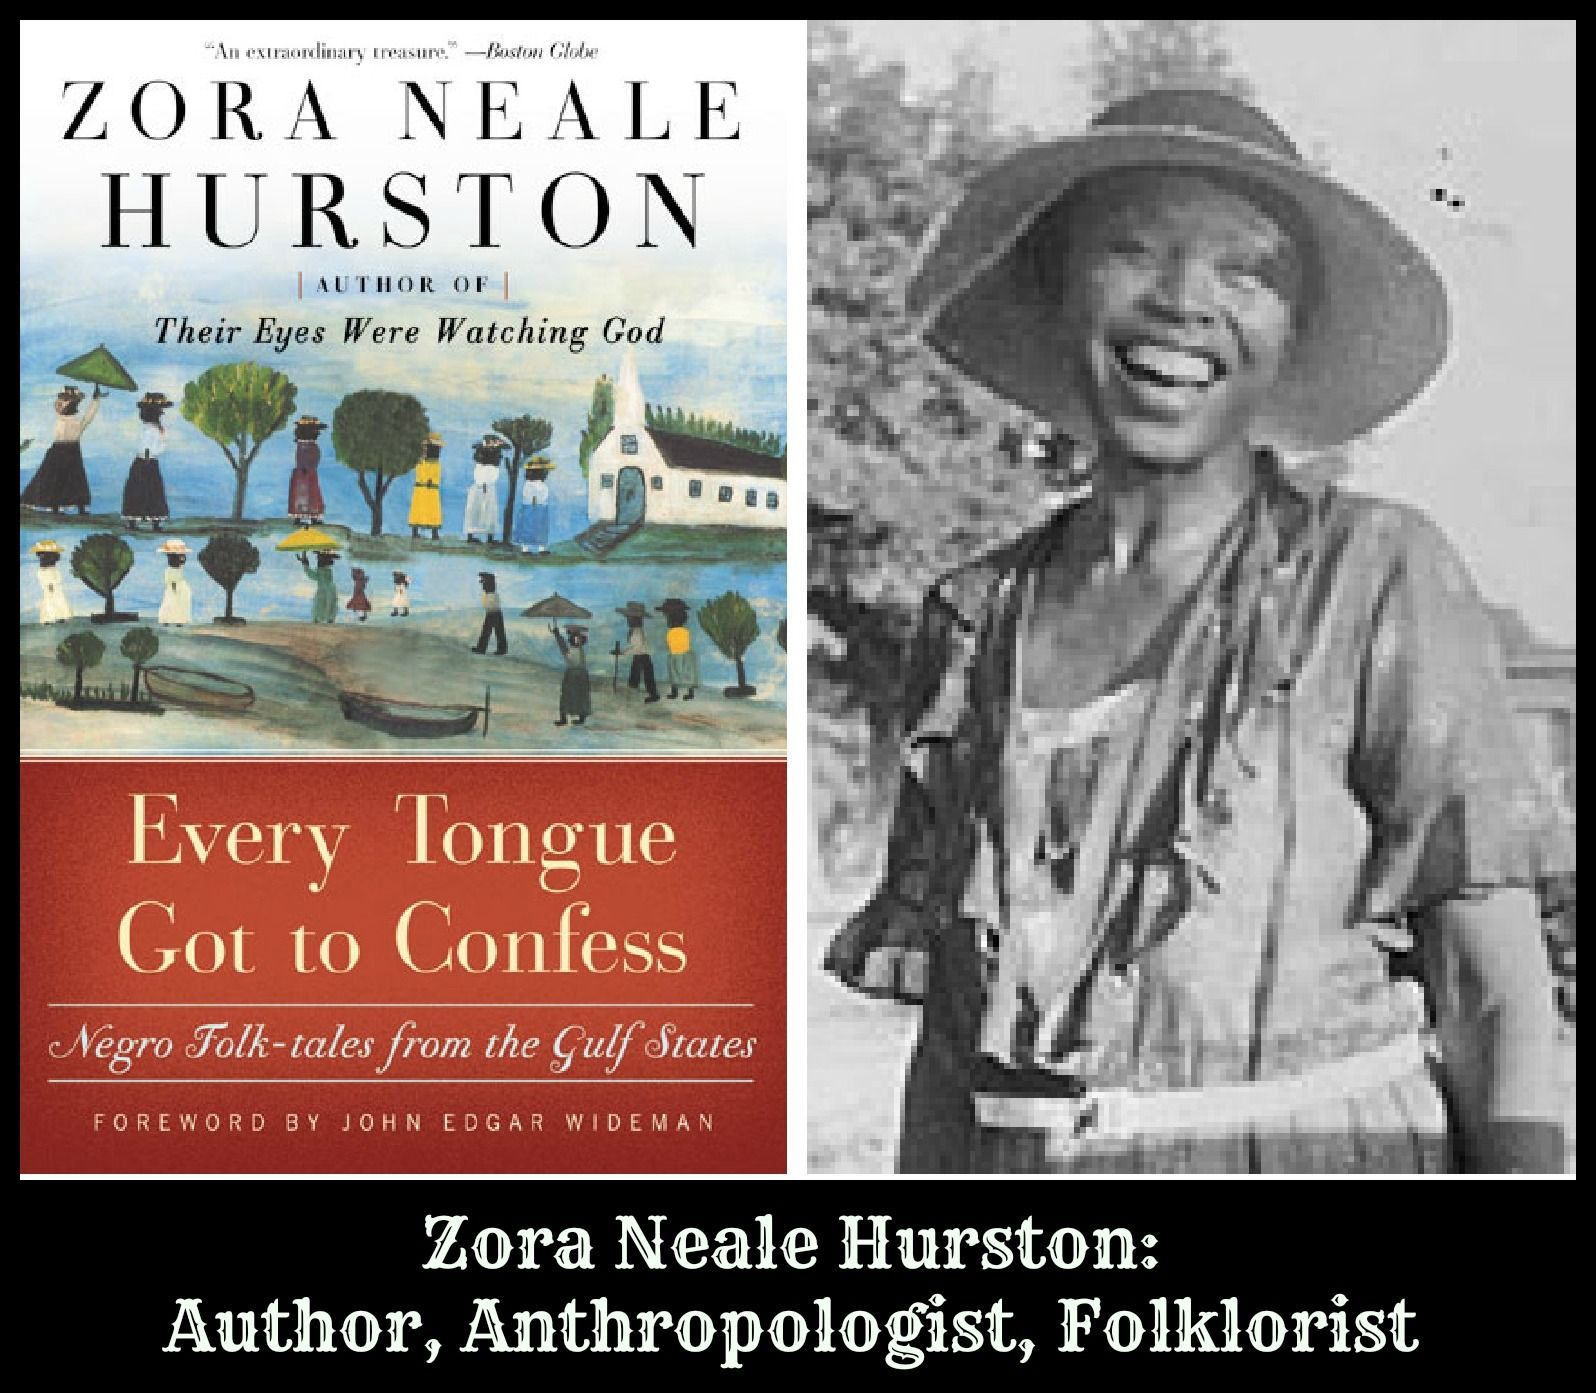 Zora Neale Hurston Wa A Complex And Controversial Figure Recognized Mainly For Her Writing Their E History Book African American Culture Worth Reading Essays Essay